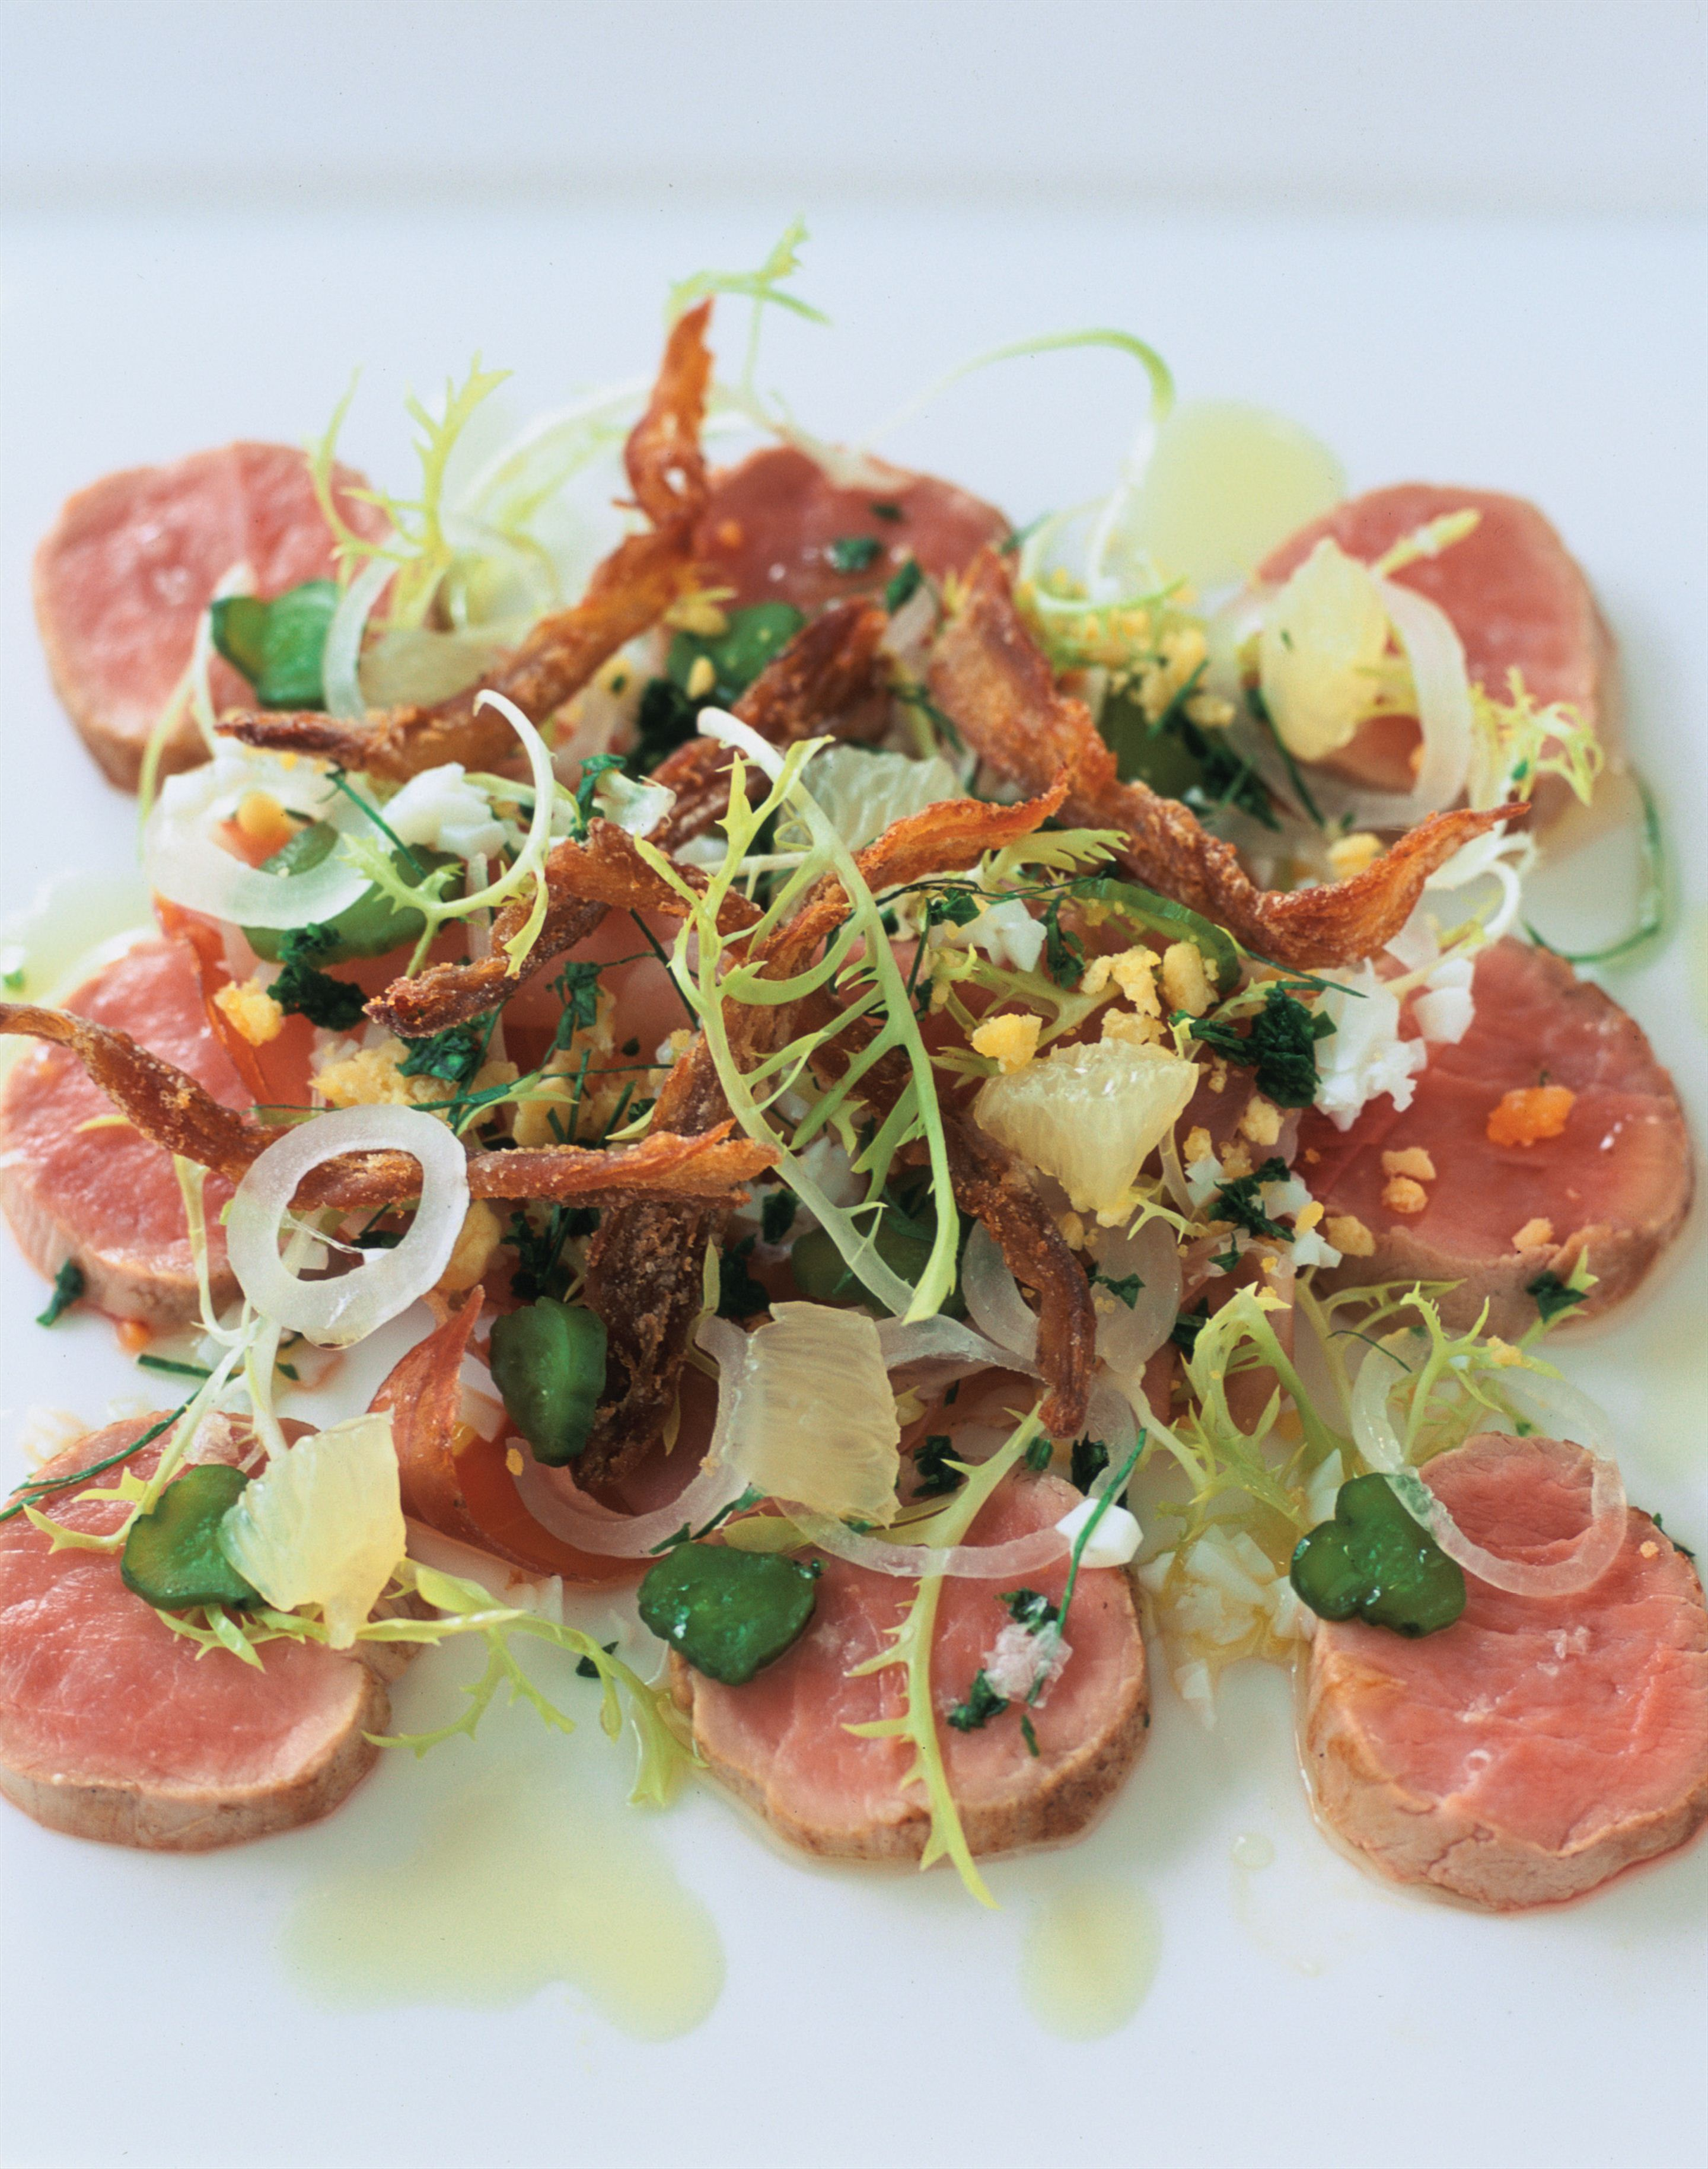 Slow-poached fillet of pork with gribiche vinaigrette and crisp pig's tail